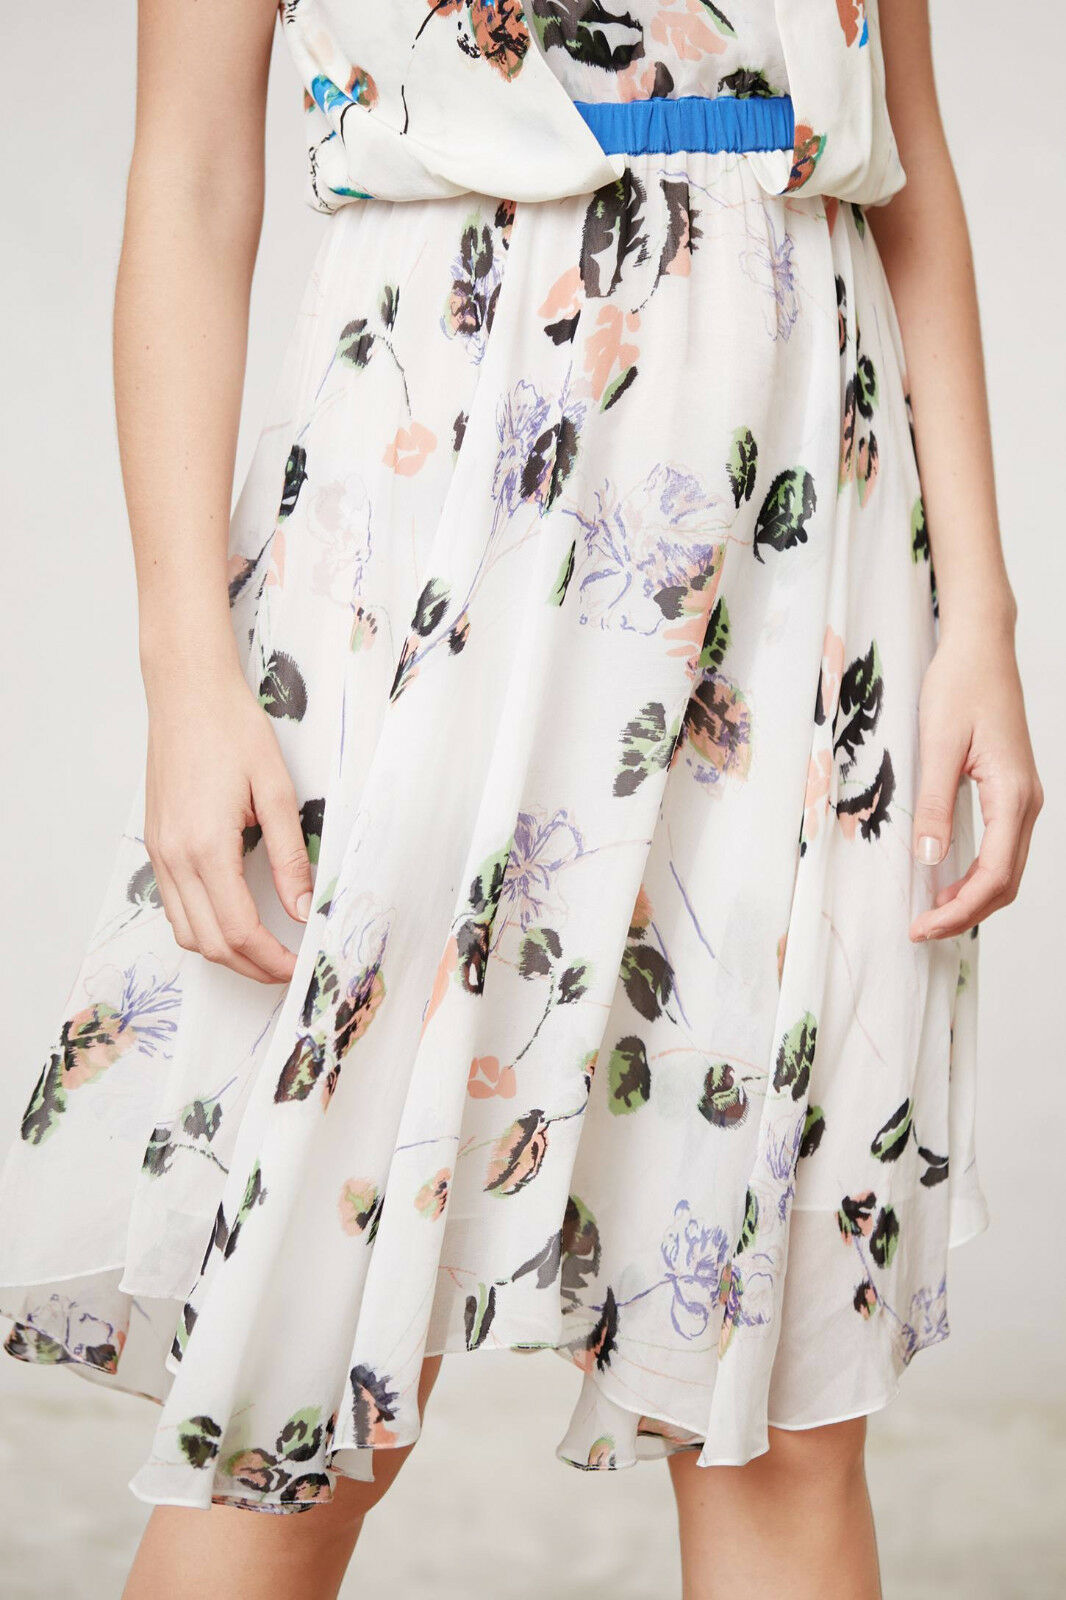 San San San & Soni Draped Wildflower Dress Small, Medium Multi-colors NW ANTHROPOLOGIE T 68585b